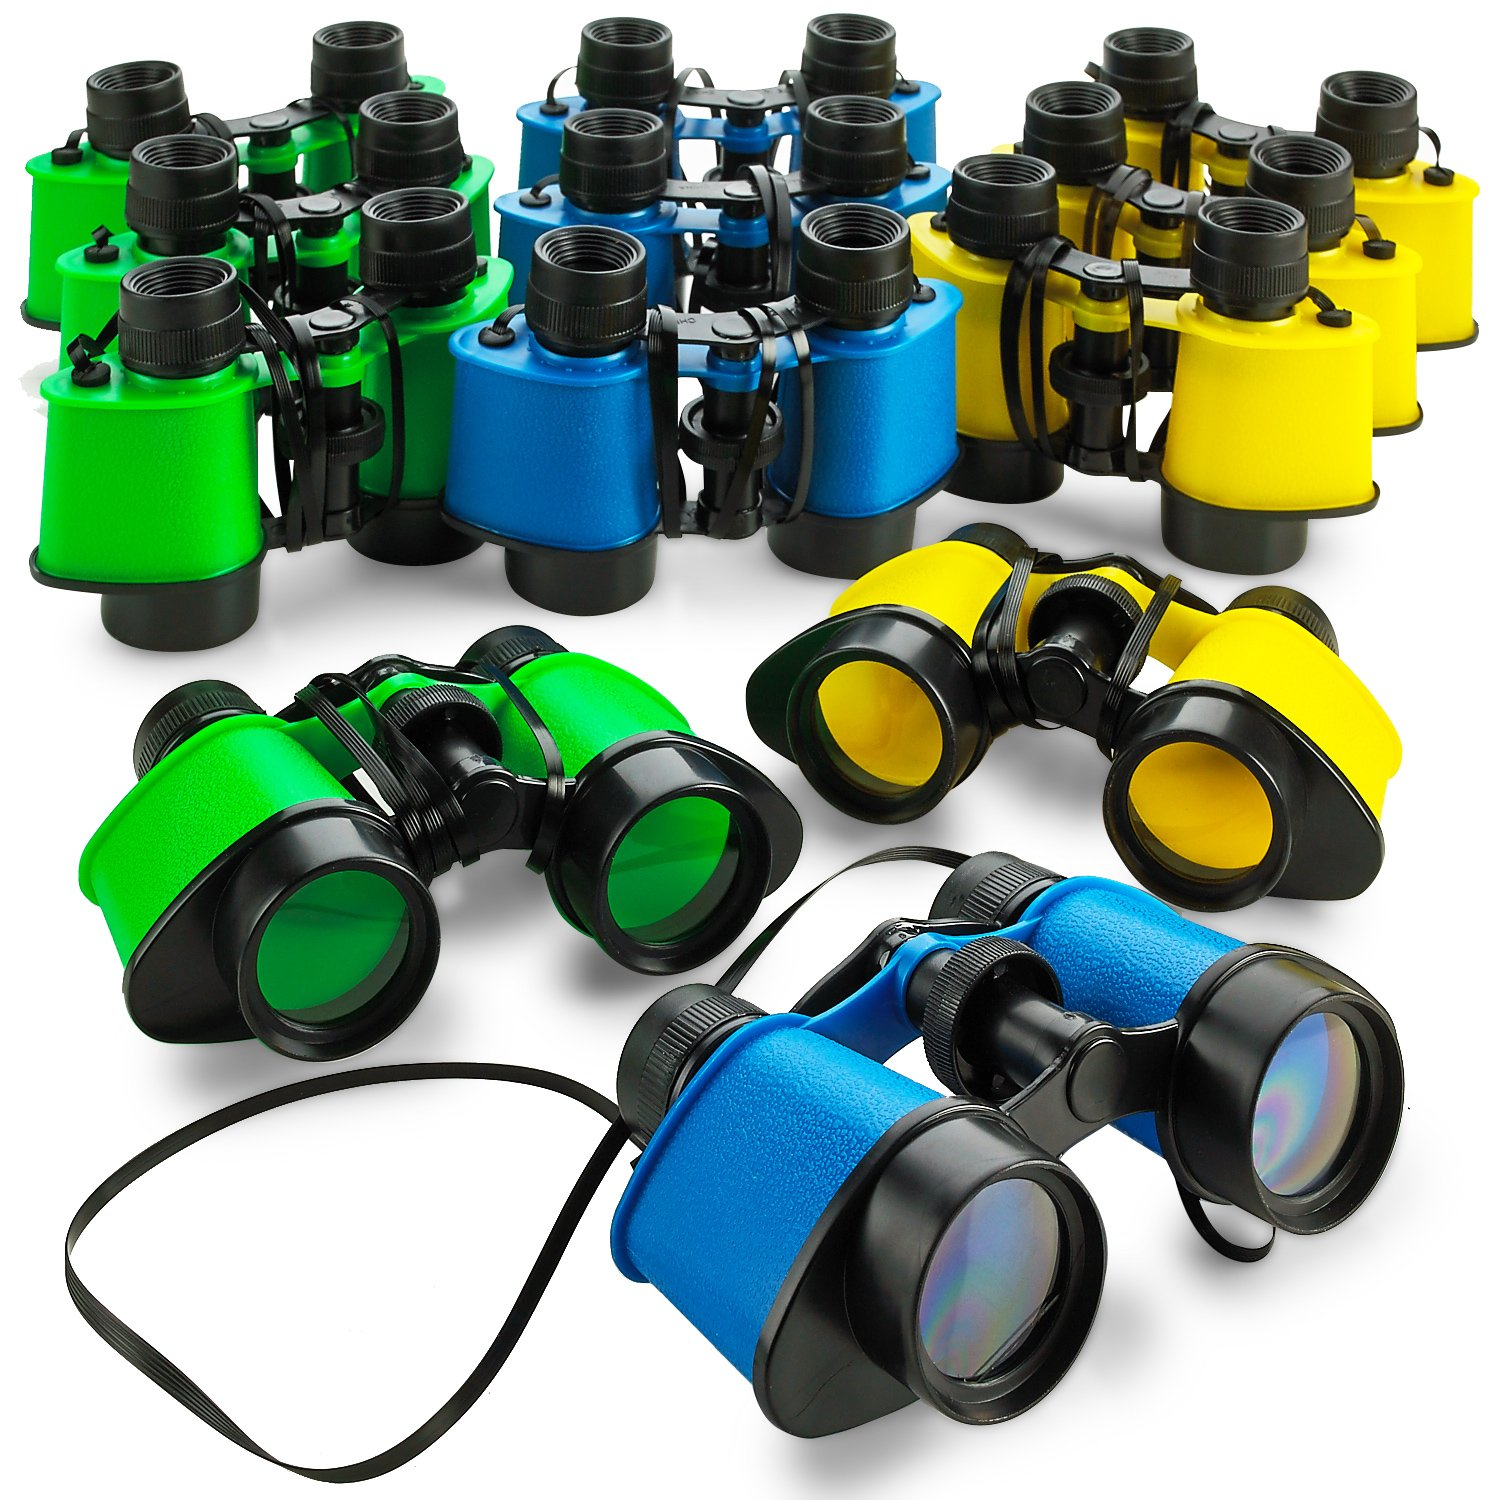 Kidsco 12 Toy Binoculars With Neck String 3.5'' x 5'' - Novelty Binoculars For Children, Sightseeing, Birdwatching, Wildlife, Outdoors, Scenery, Indoors, Pretend, Play, Props, And Gifts – By